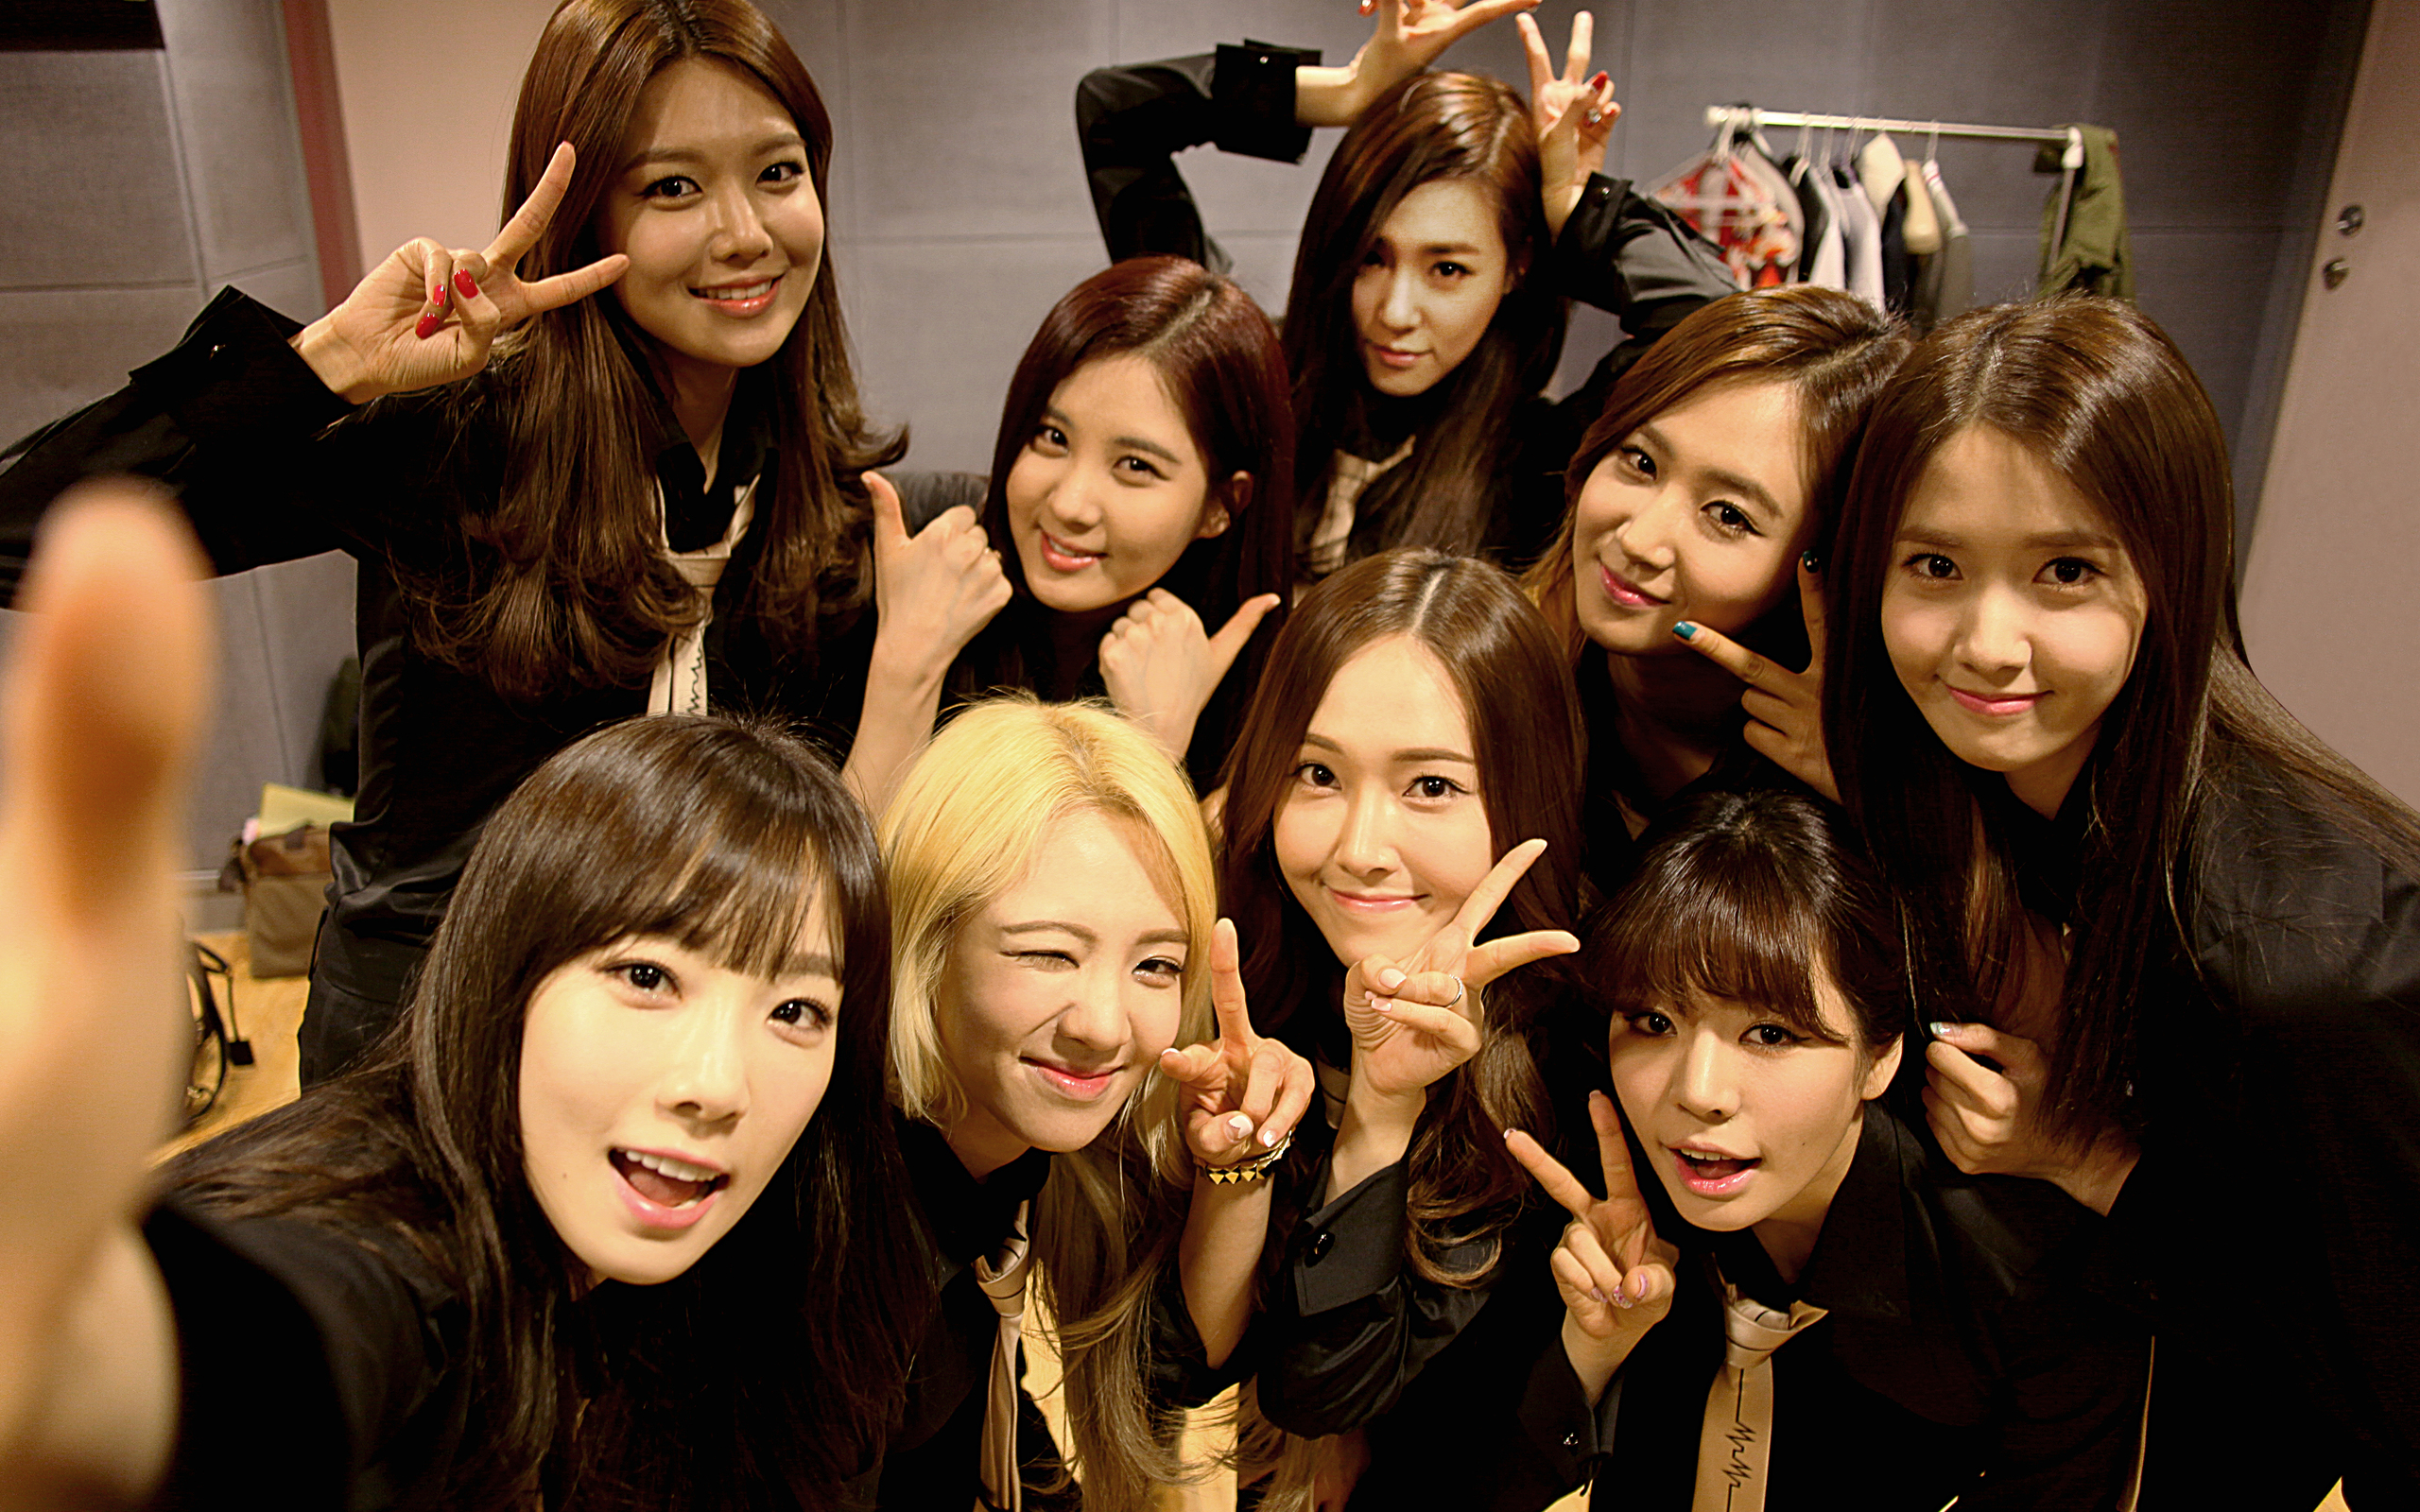 Google themes kpop - Girls Generation A First In Kpop Artists Makes It To The Top Trending Themes For Google S New Feature Gmail Shelfie